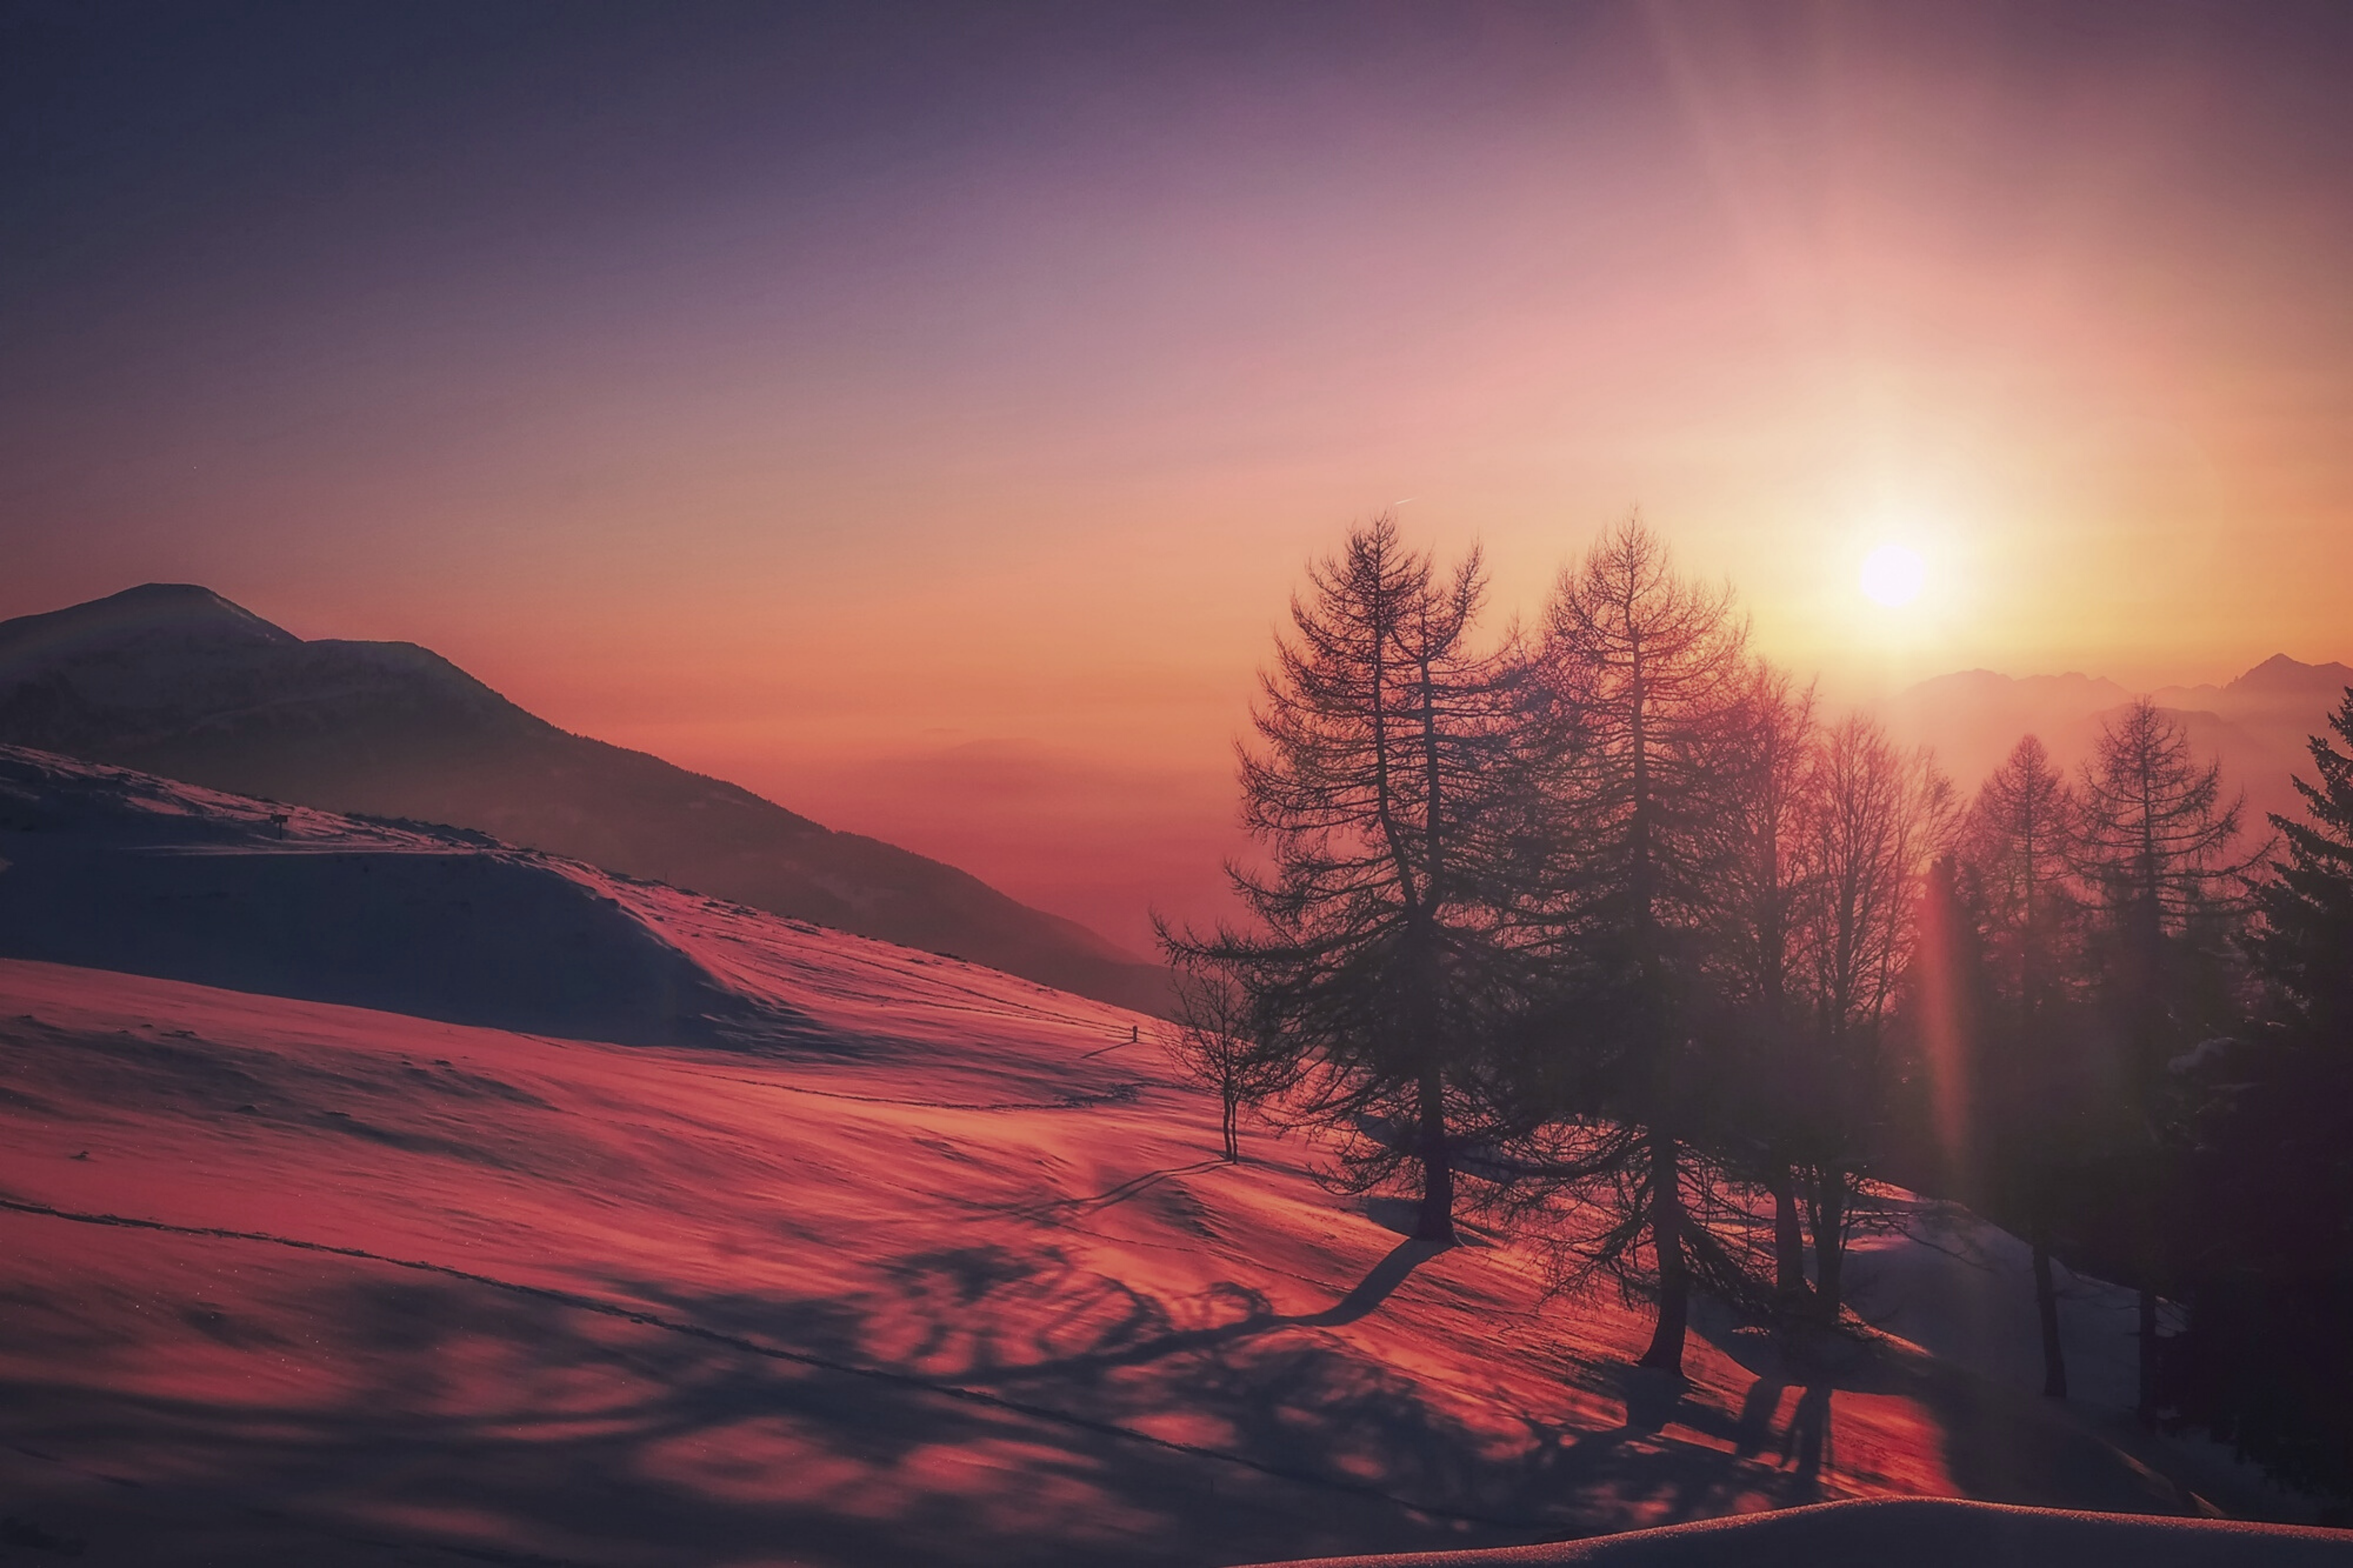 Beautiful Italy Red Sky Snow Mountains Sunrise Canvas Print By S1mplydes1gn In 2020 Sunrise Pictures Landscape Photography Sunrise Wallpaper